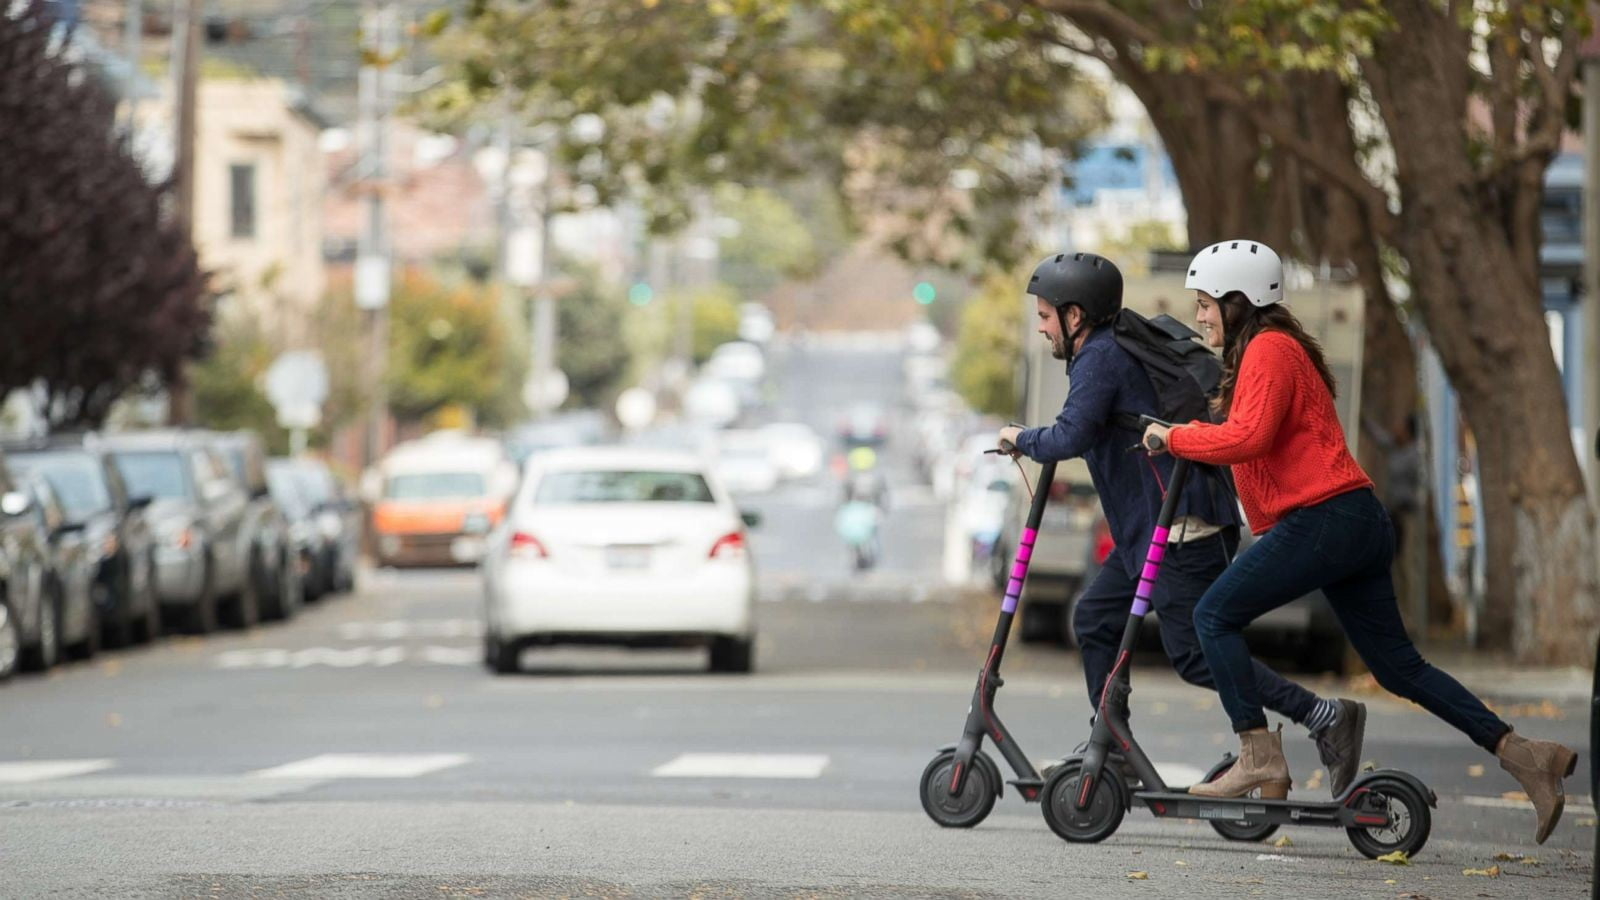 Lyft Has Just Launched Its First App-based Scooter Service | Digital